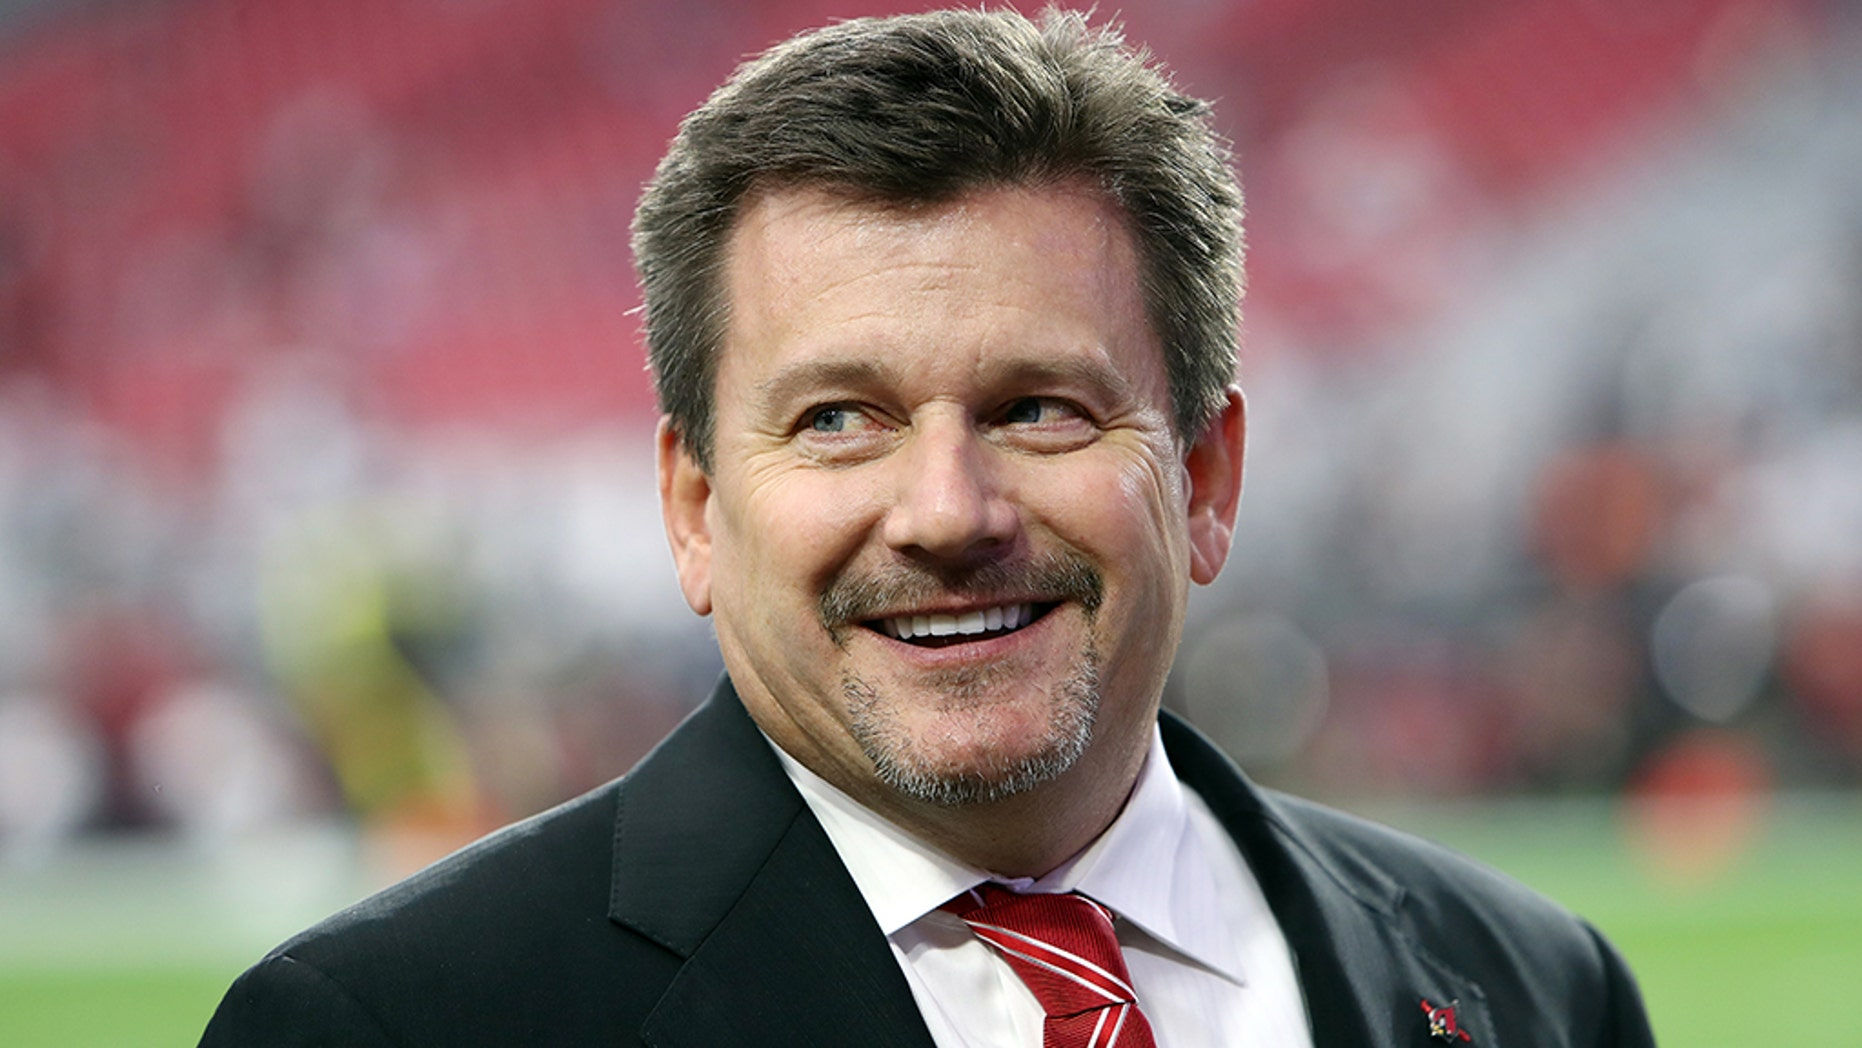 Michael Bidwill has been president of the Arizona Cardinals since 2007.